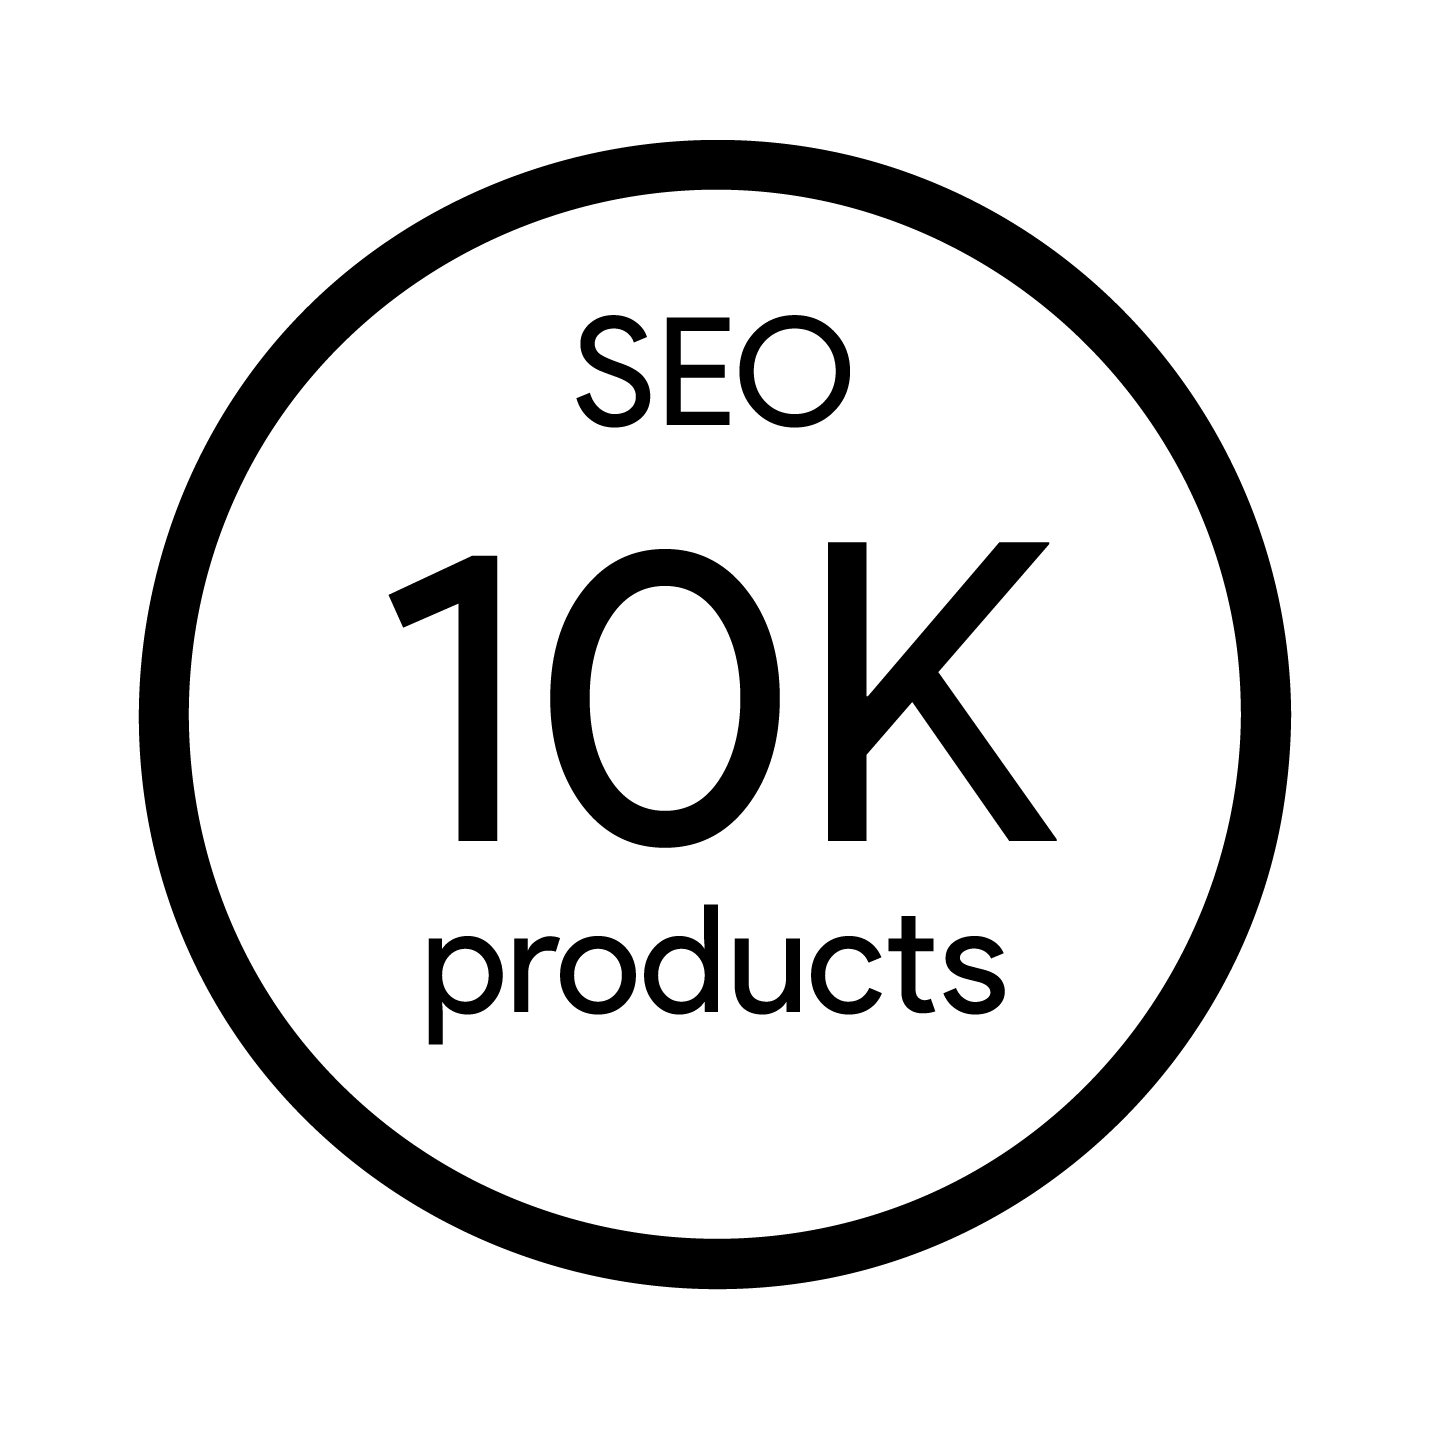 seo 10k products